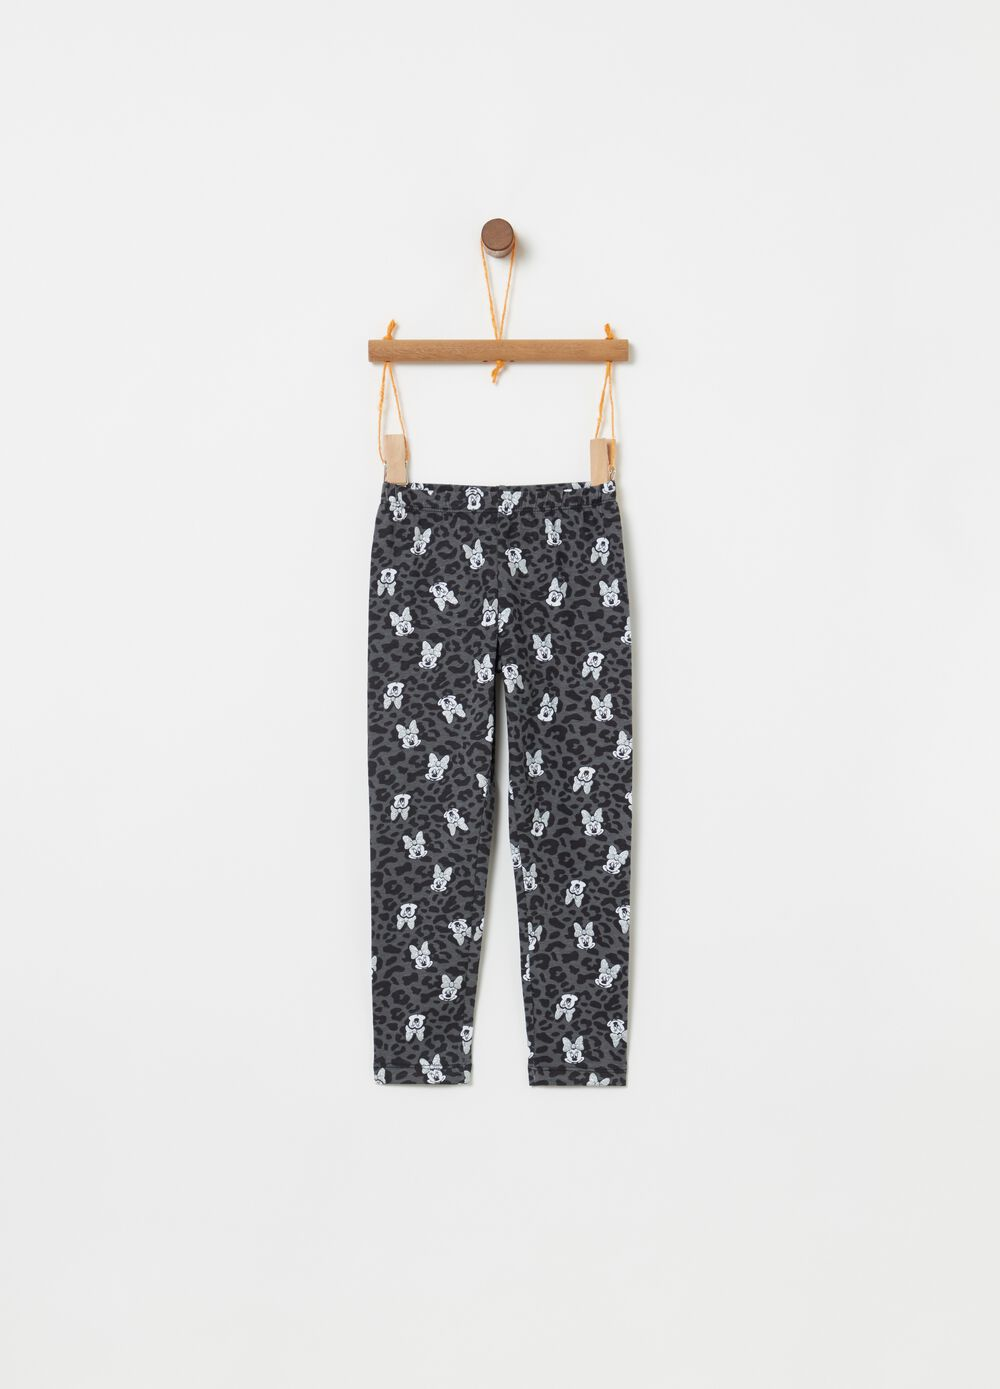 Minnie leggings with all over animal pattern